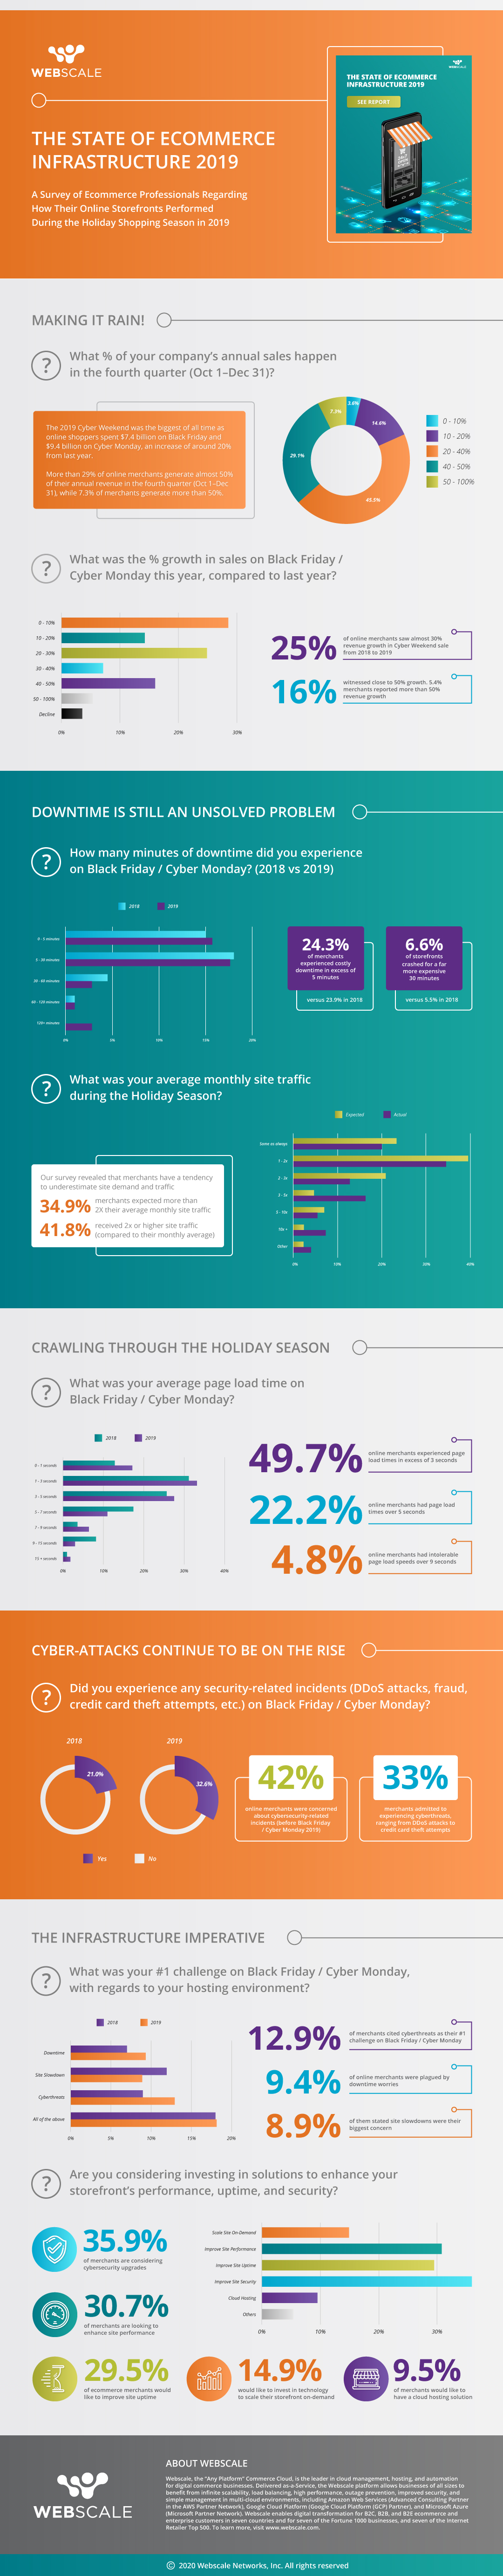 State of E-commerce Infrastructure 2019 - An Infographic